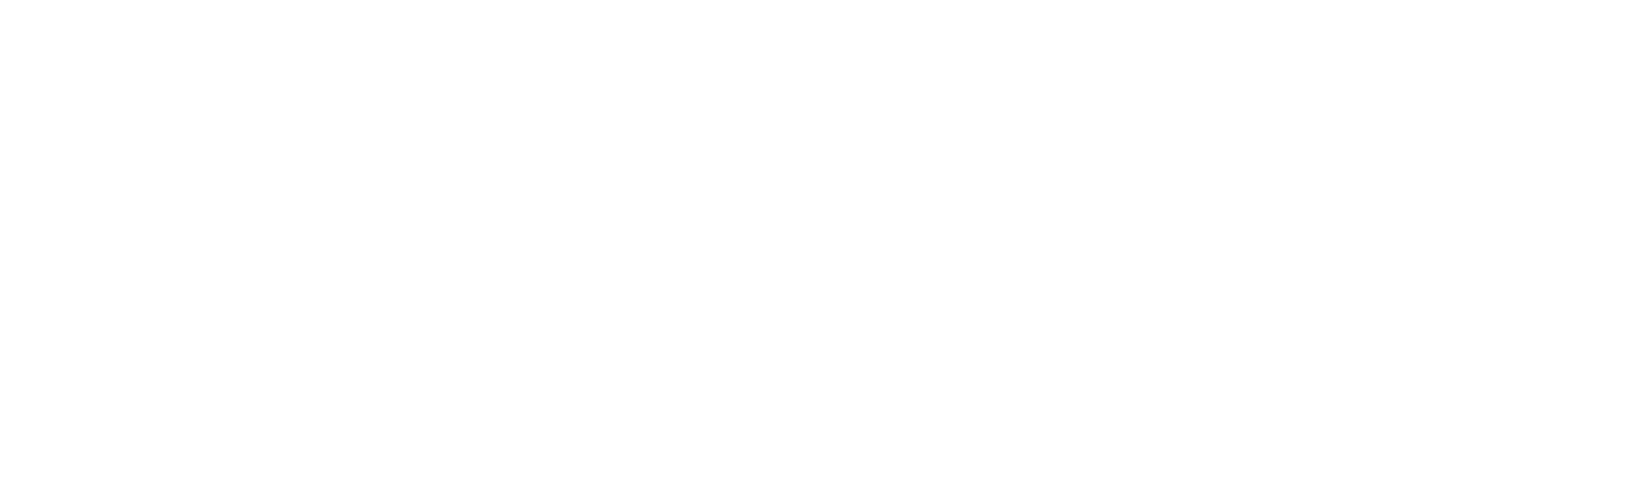 Margot Cafe & Bar